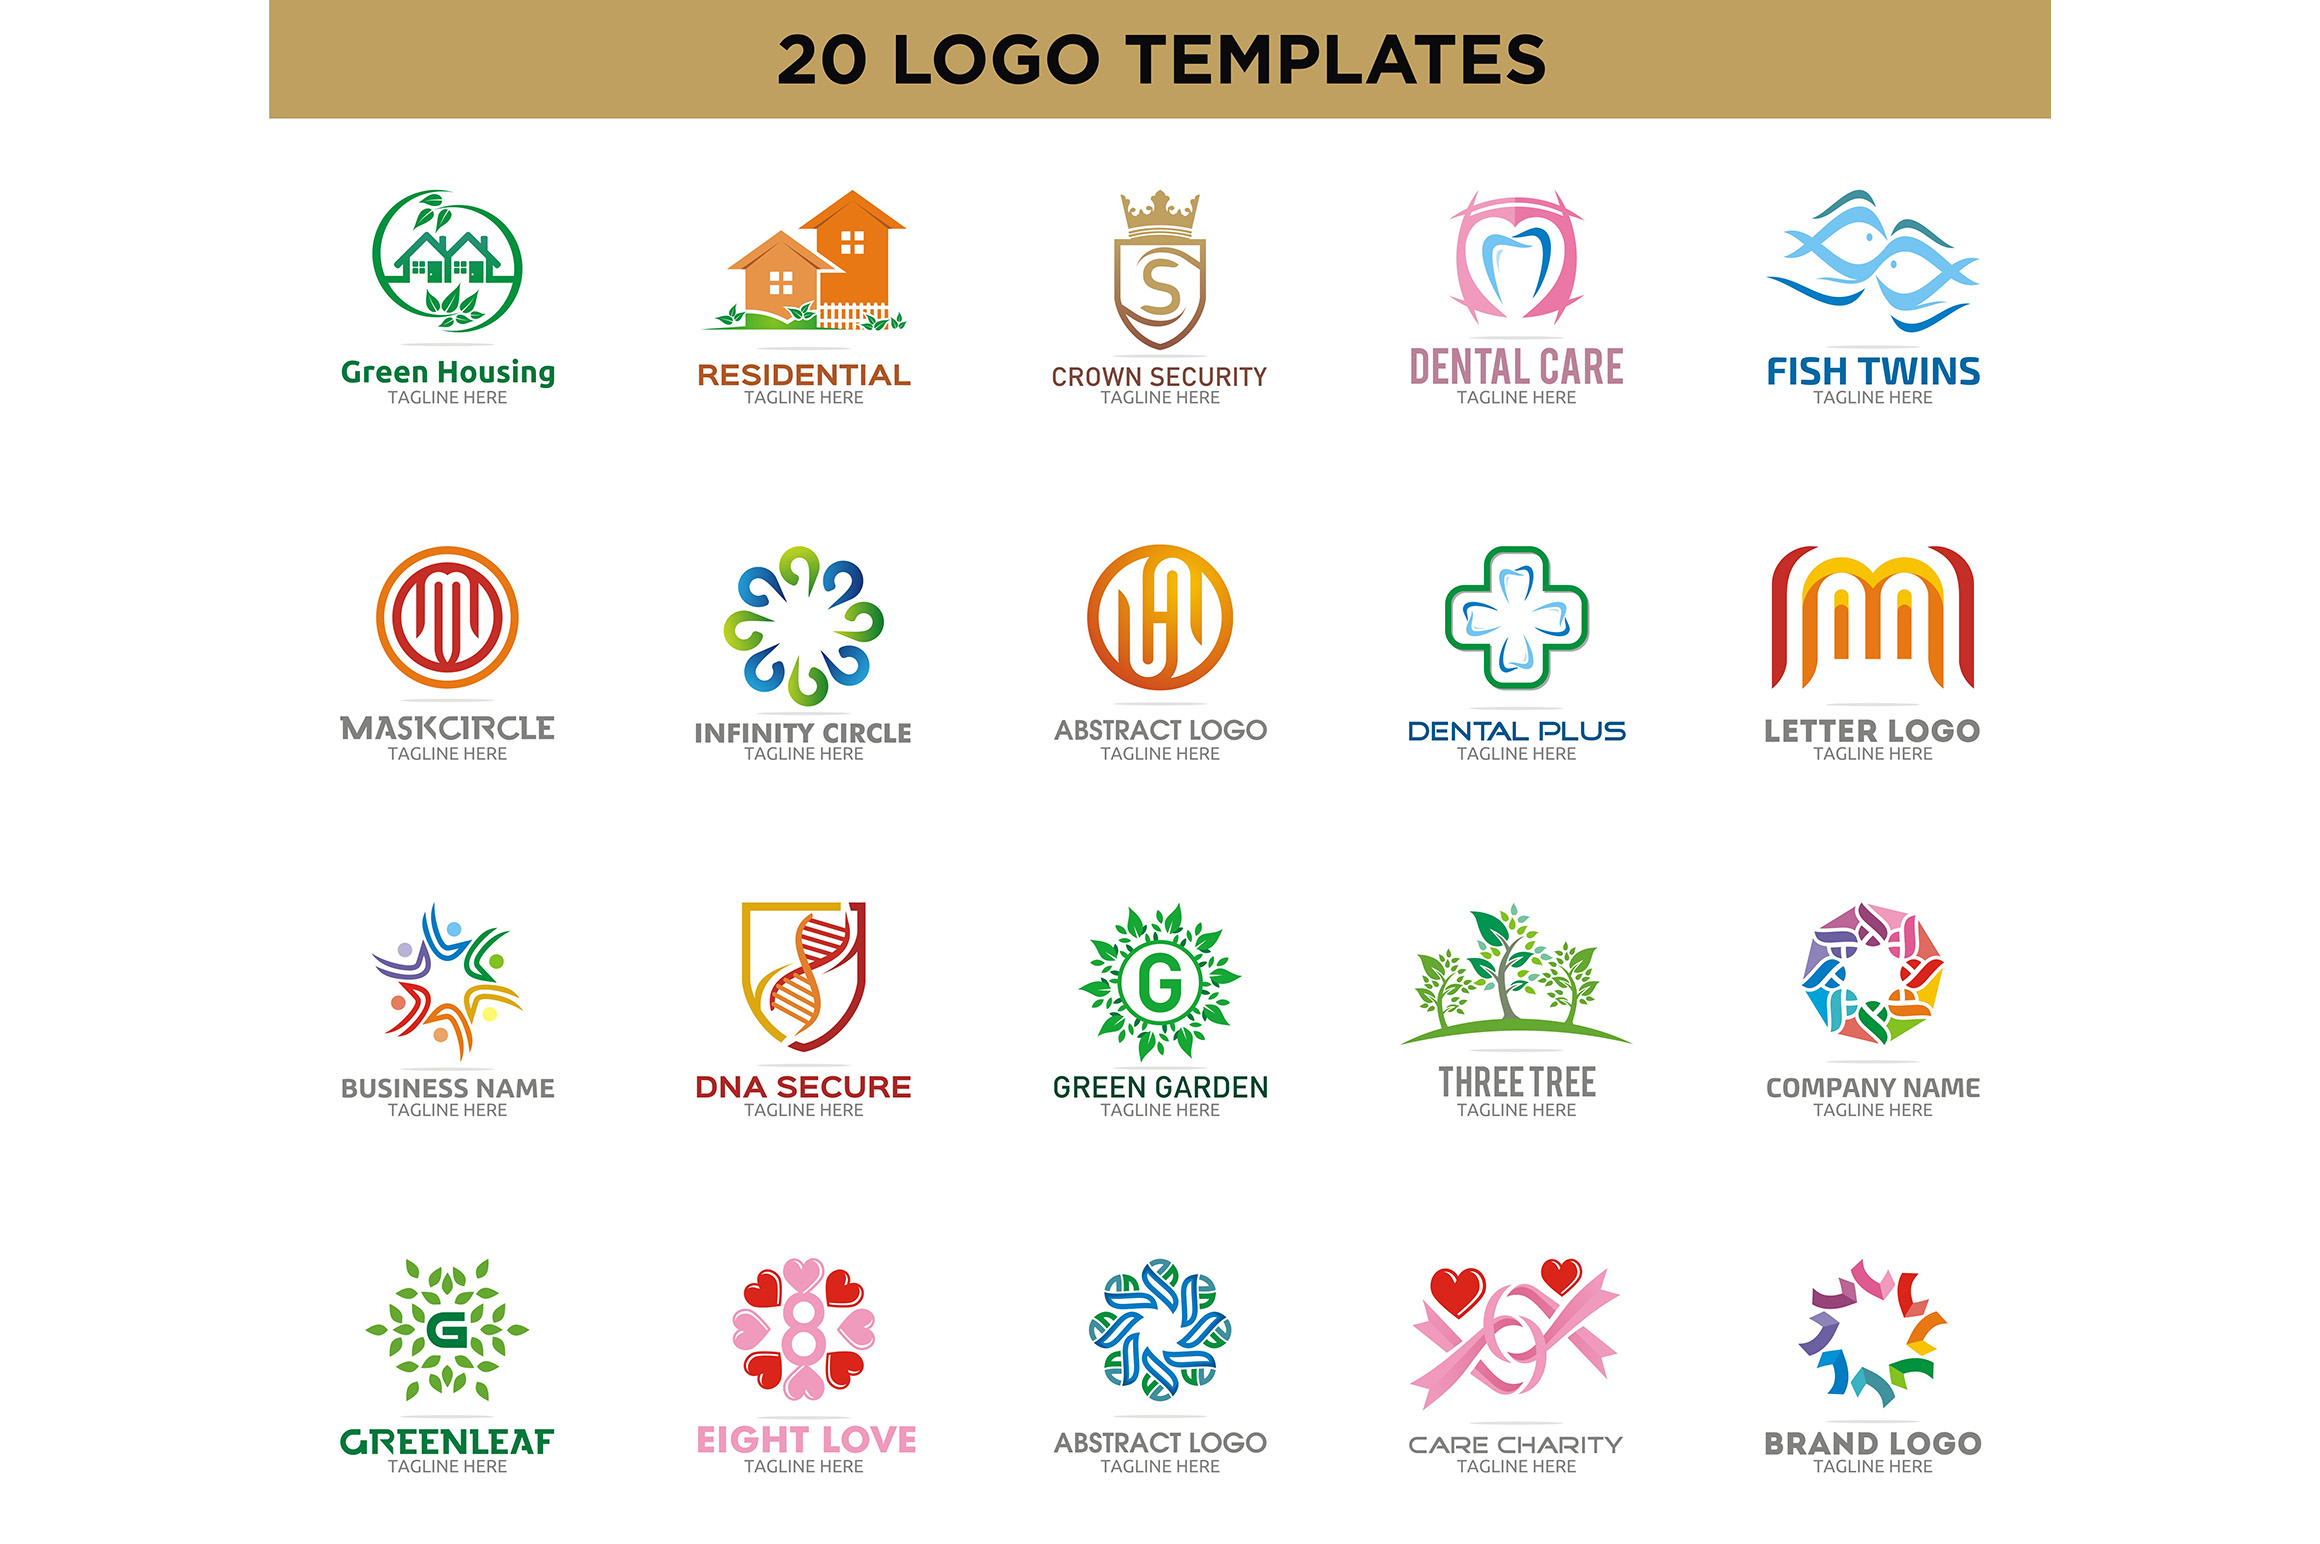 446 business logo bundle 985 off 446 business logo bundle 985 off example image 21 flashek Images